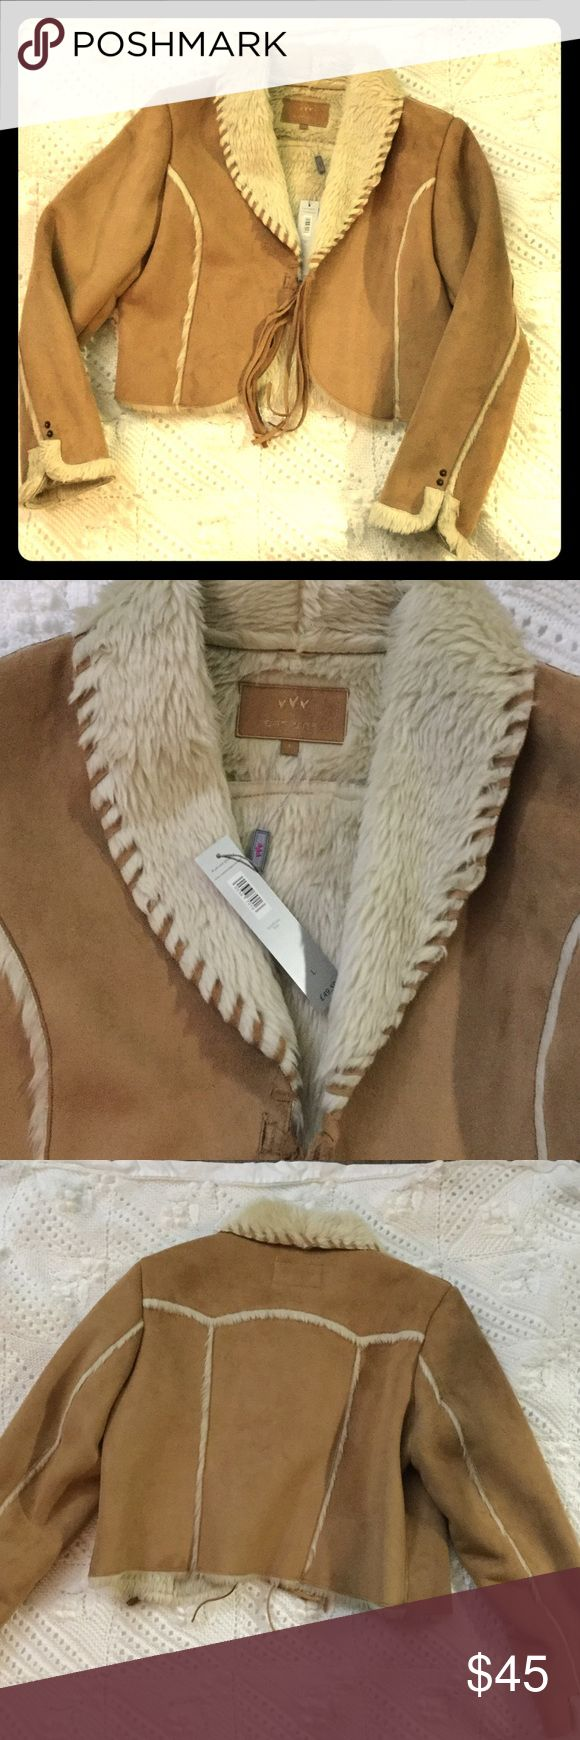 NWT Tan faux suede and fur jacket tassel closure NWT from Marks & Spencer in England. Faux suede and fur jacket. Beautiful tan color with beige fur trim down sleeves and on back. Inside and sleeves are completely lined with fur. Has suede stitching around collar and tassel fringe closure. Size large. Jackets & Coats